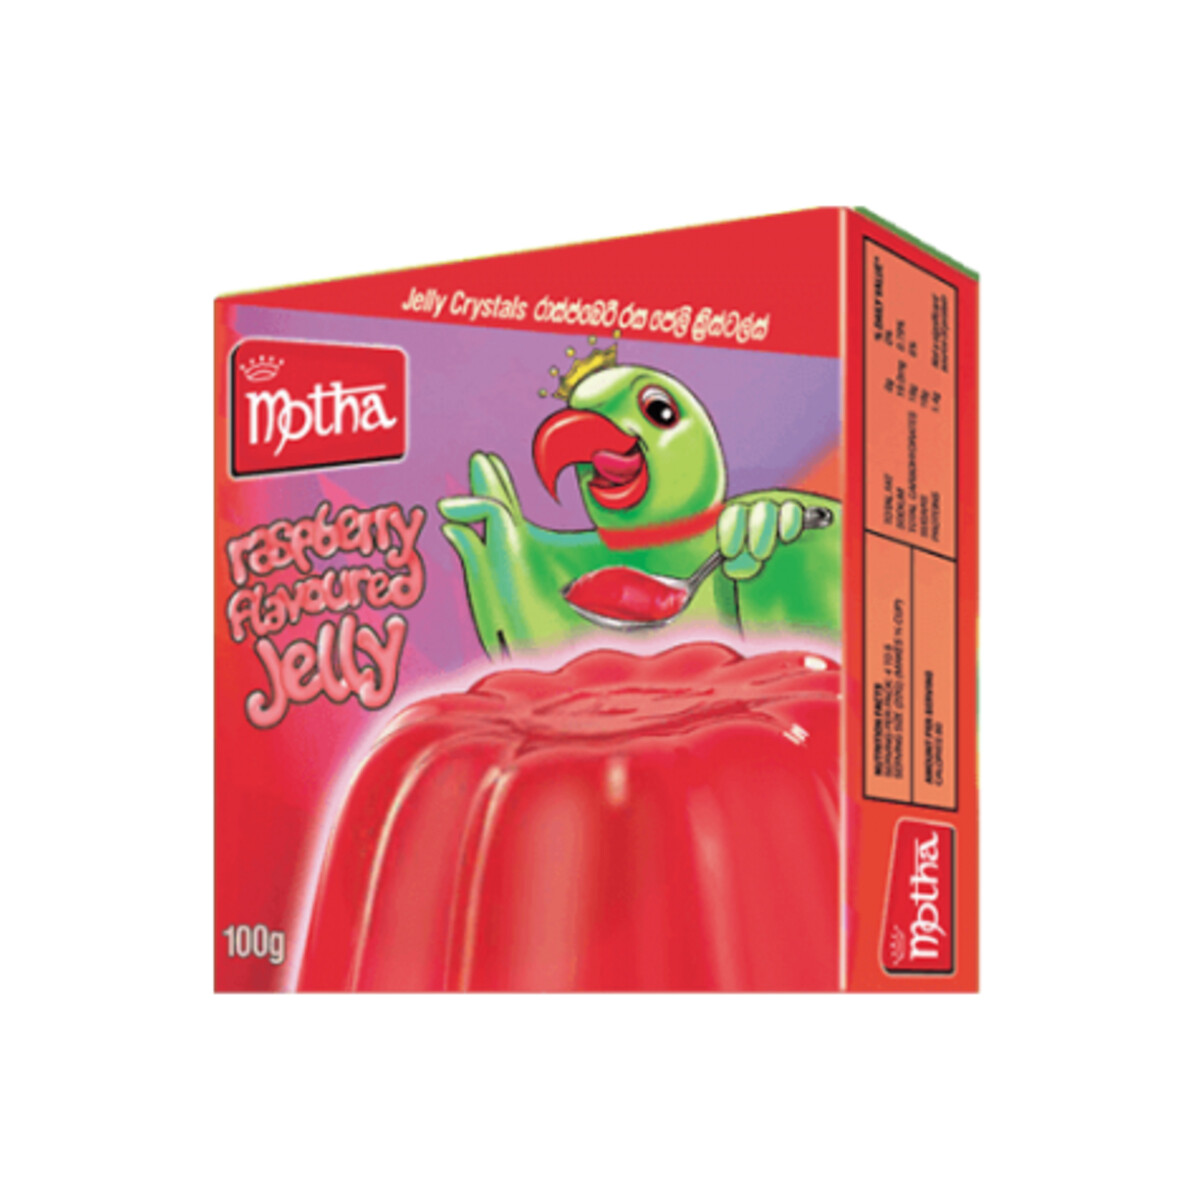 Motha Strawberry Flavoured Jelly Crystals, 100g